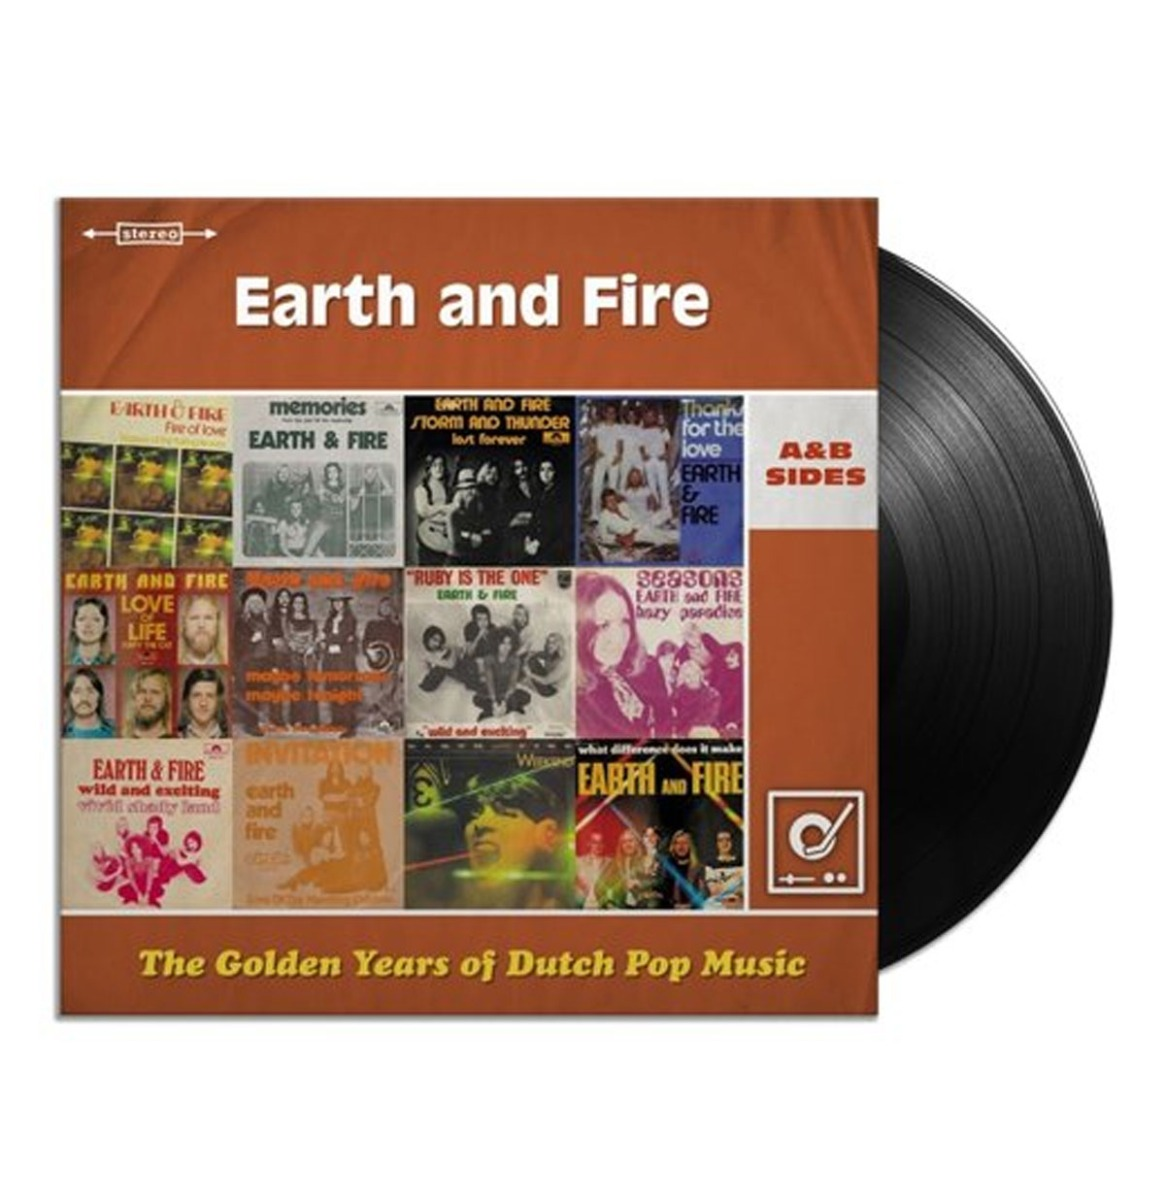 Earth And Fire - The Golden Years Of Dutch Pop Music 2LP